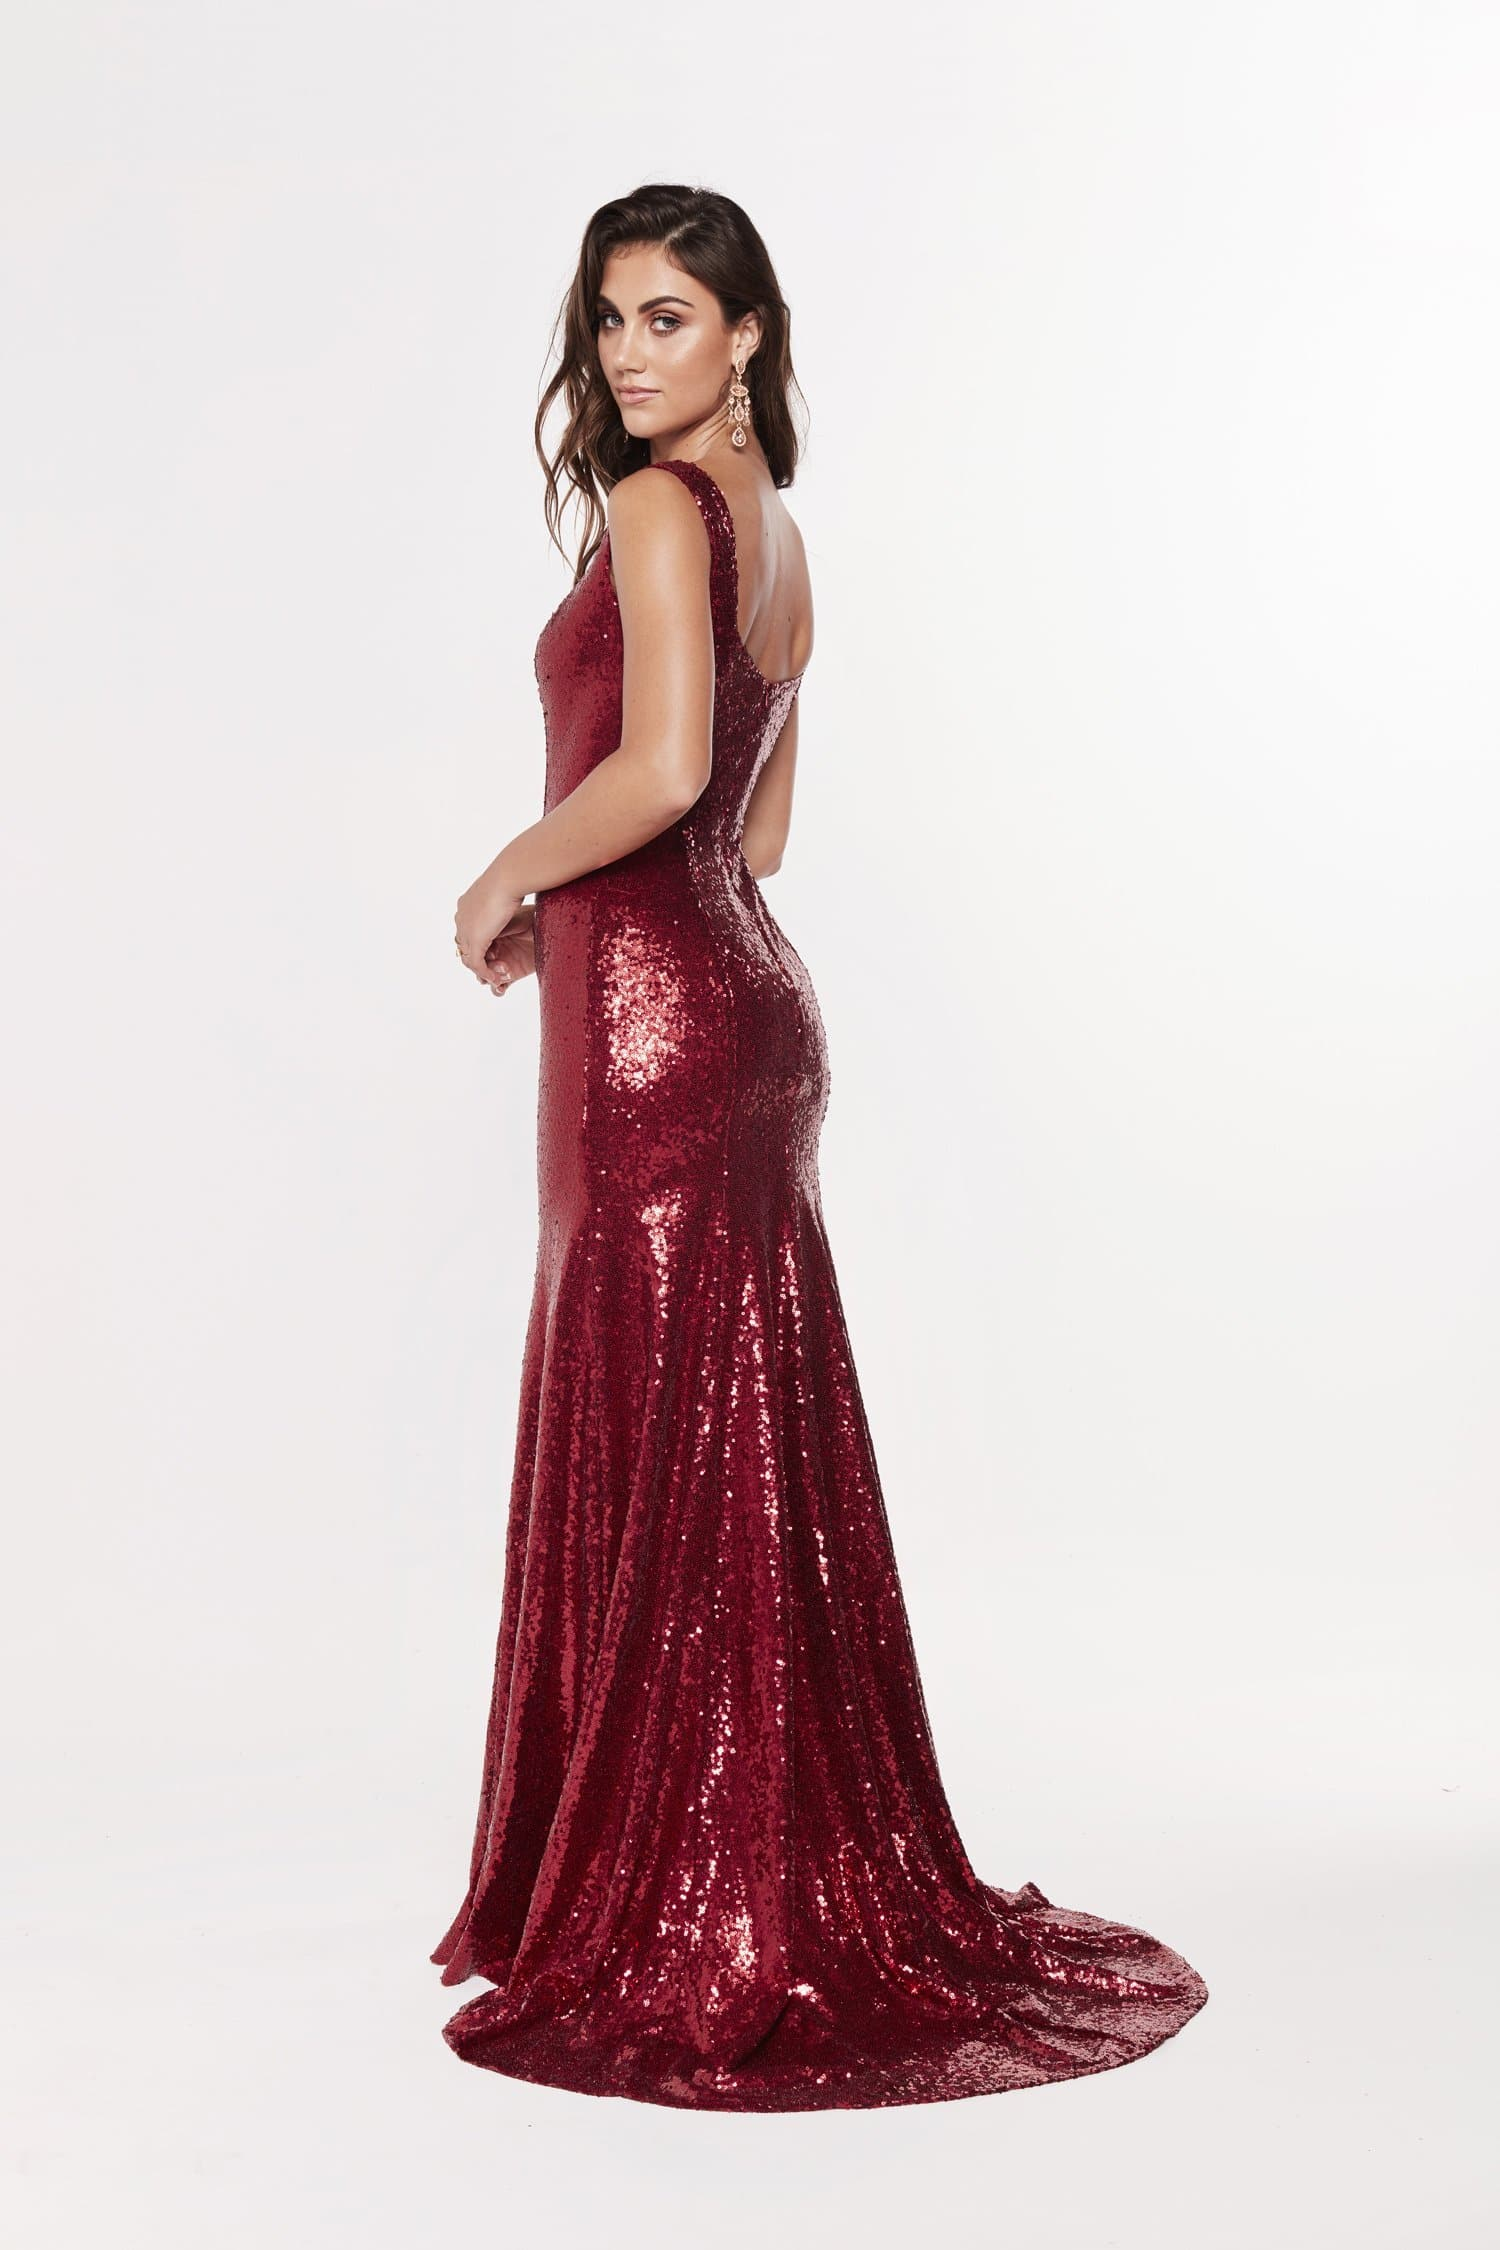 A&N Georgie - Deep Red Sequin Gown with Low Back